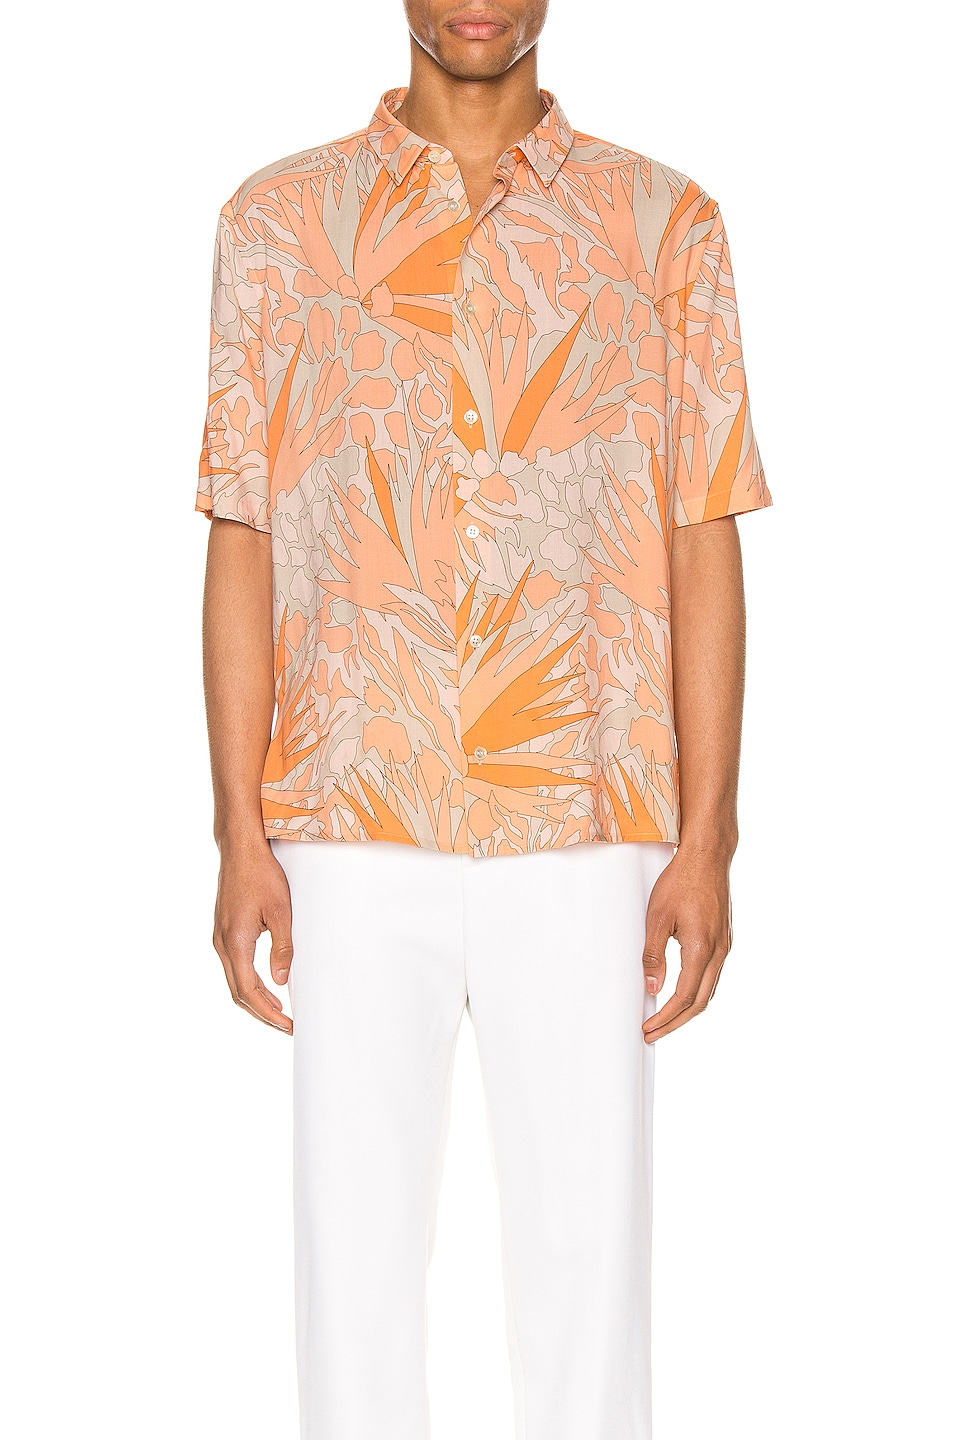 Image 1 of Saint Laurent Short Sleeve Shirt in Orange Taupe